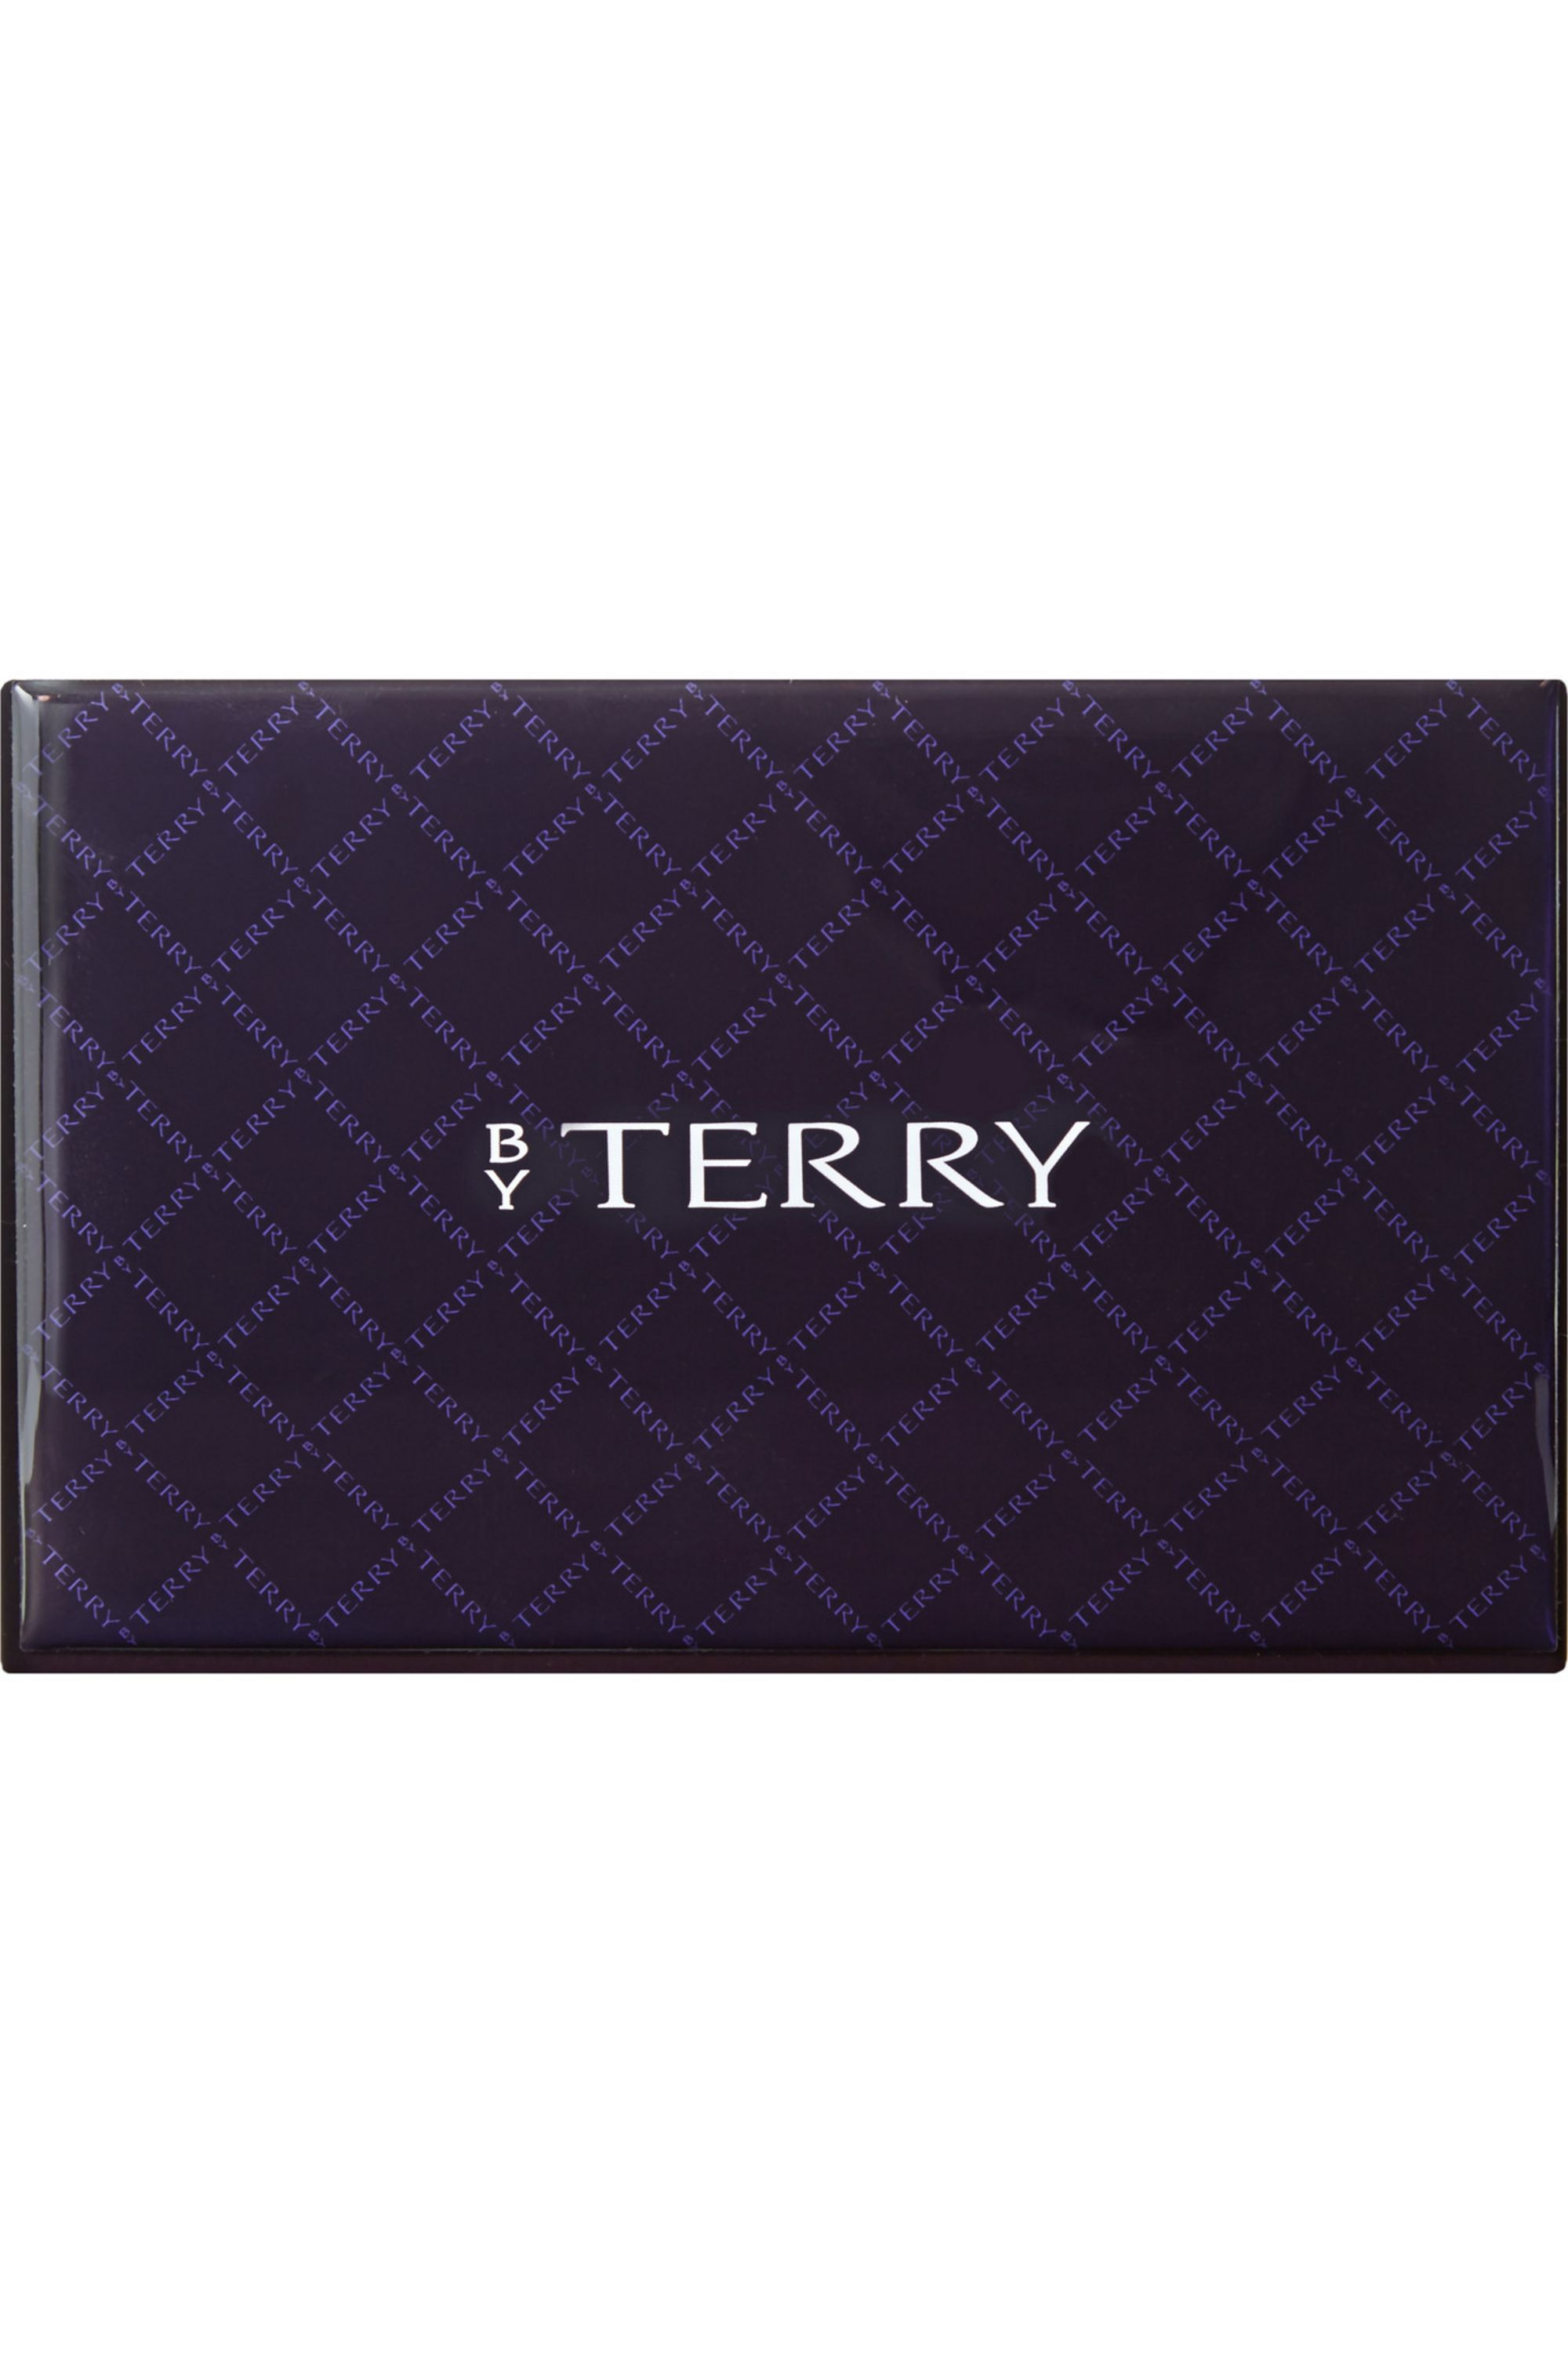 BY TERRY Eye Designer Palette - Smoky Nude 1